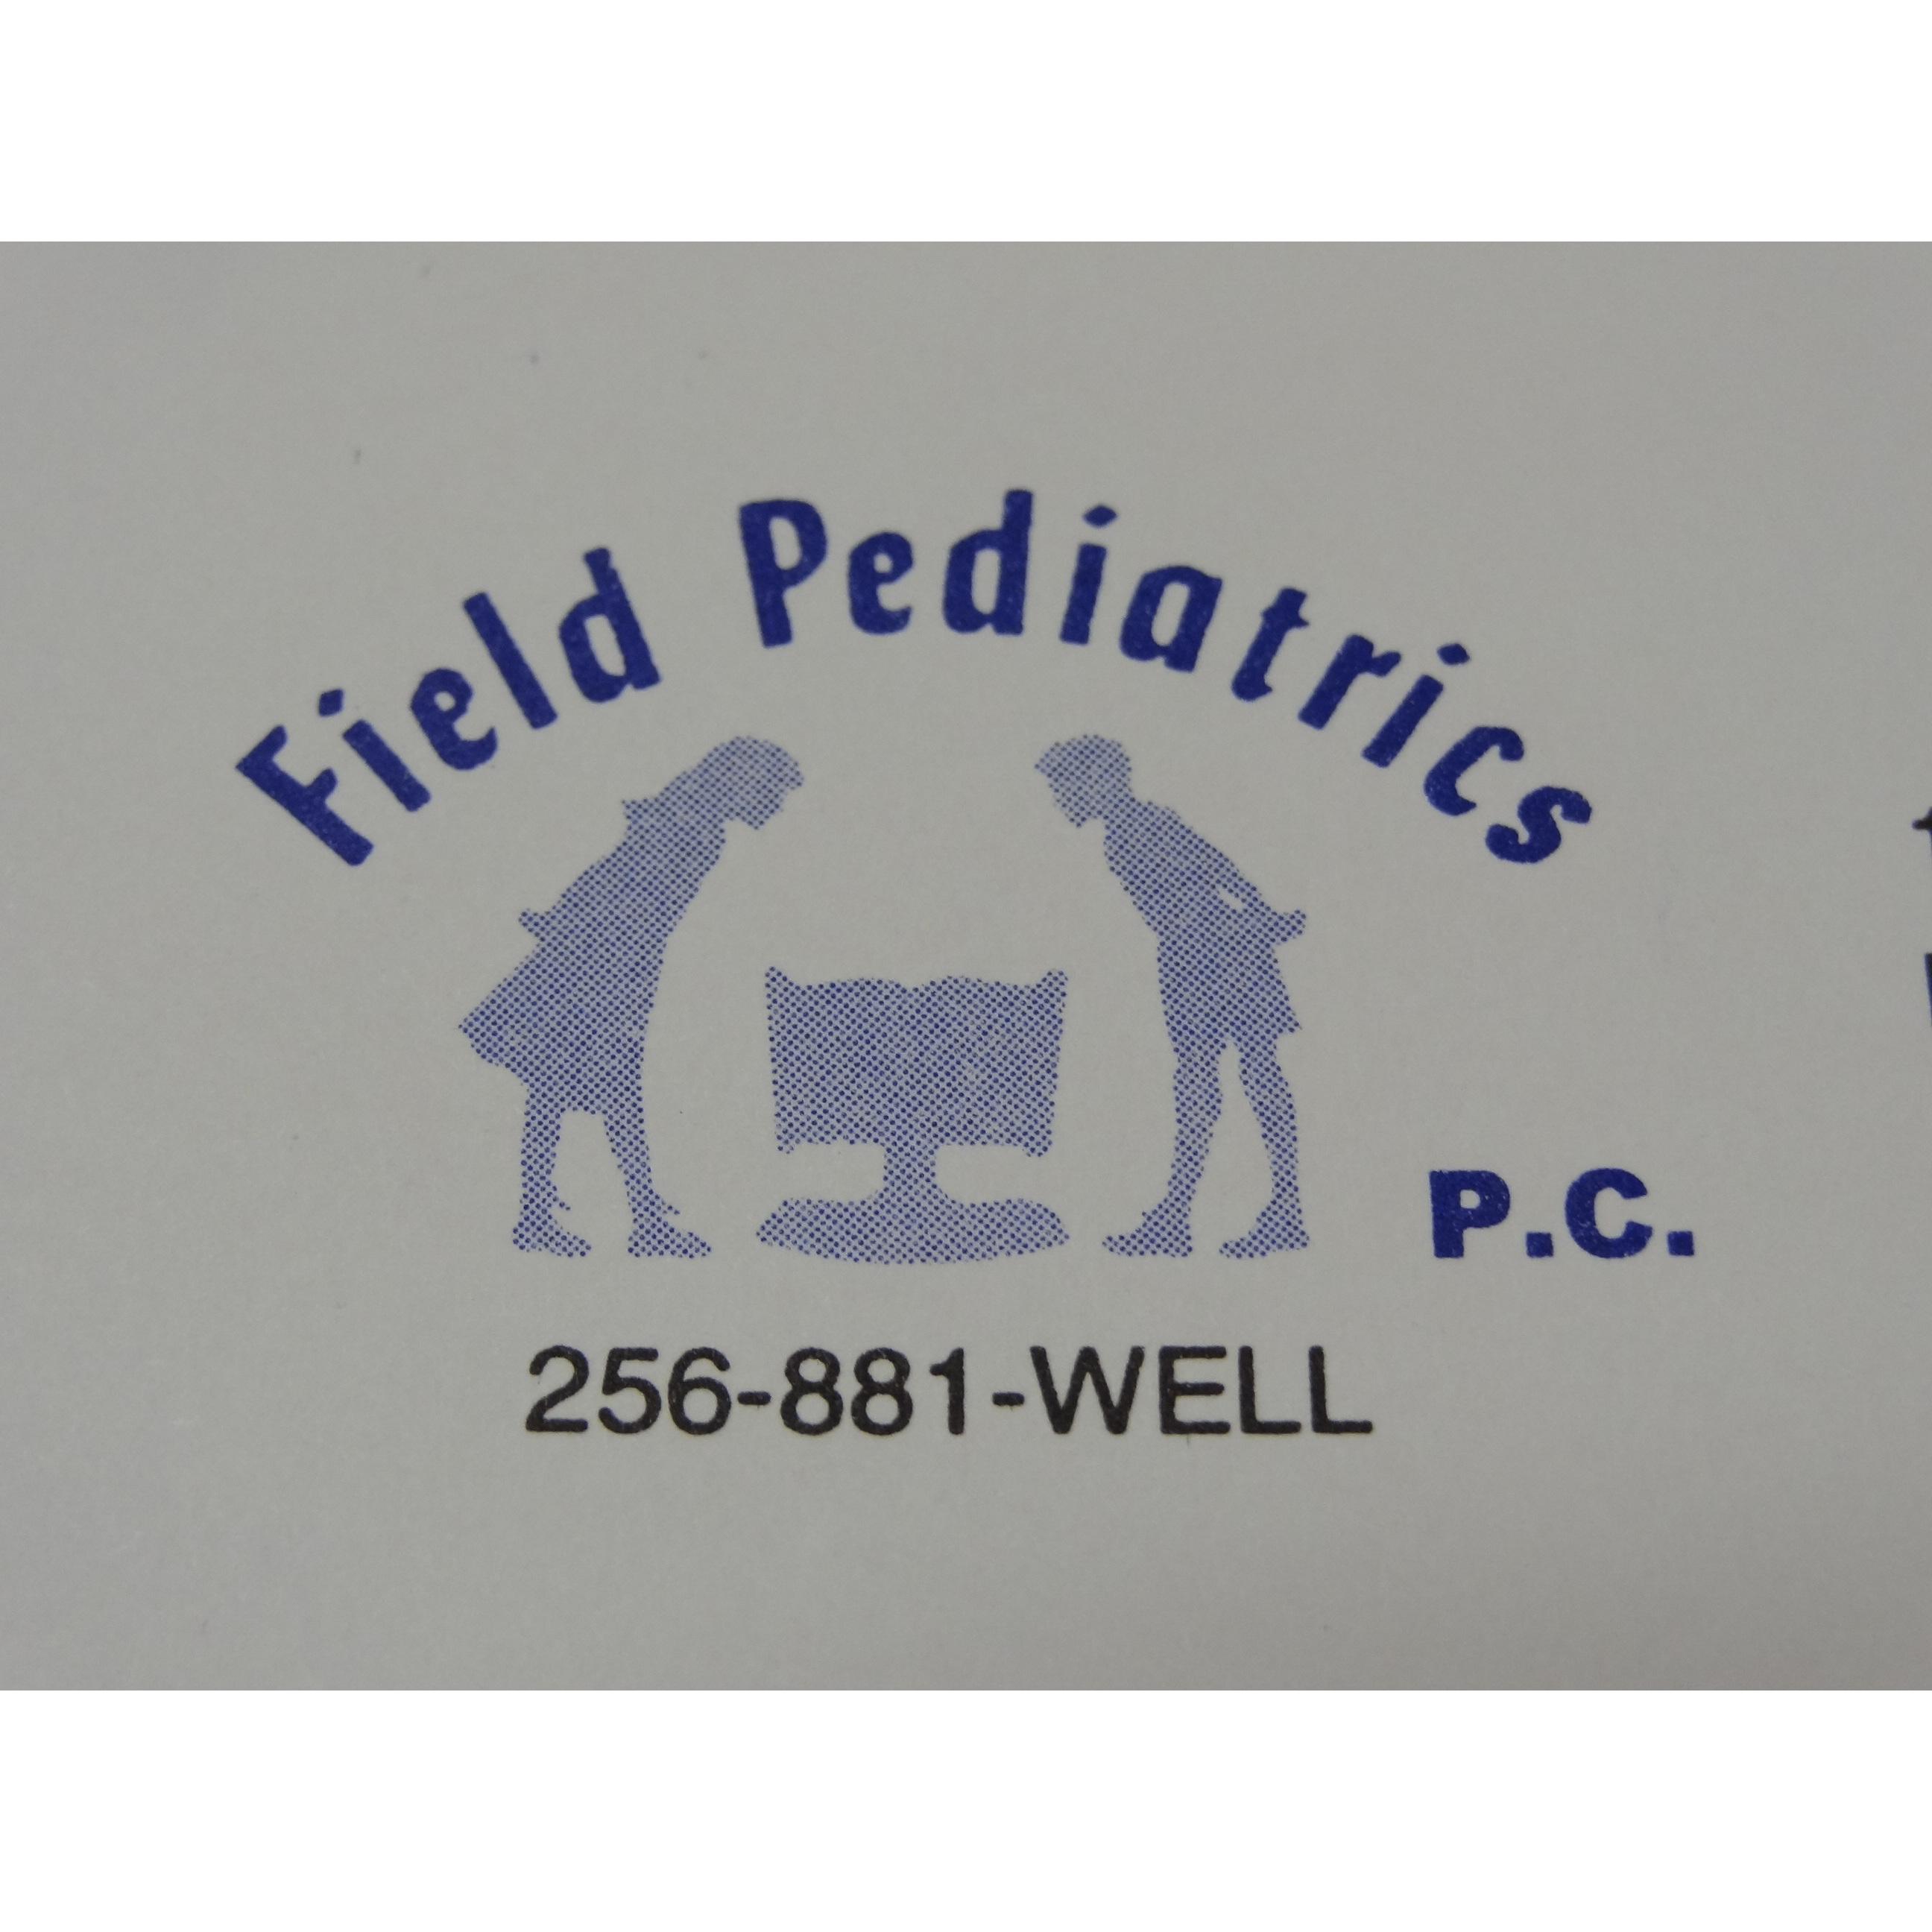 Field Pediatrics, PC